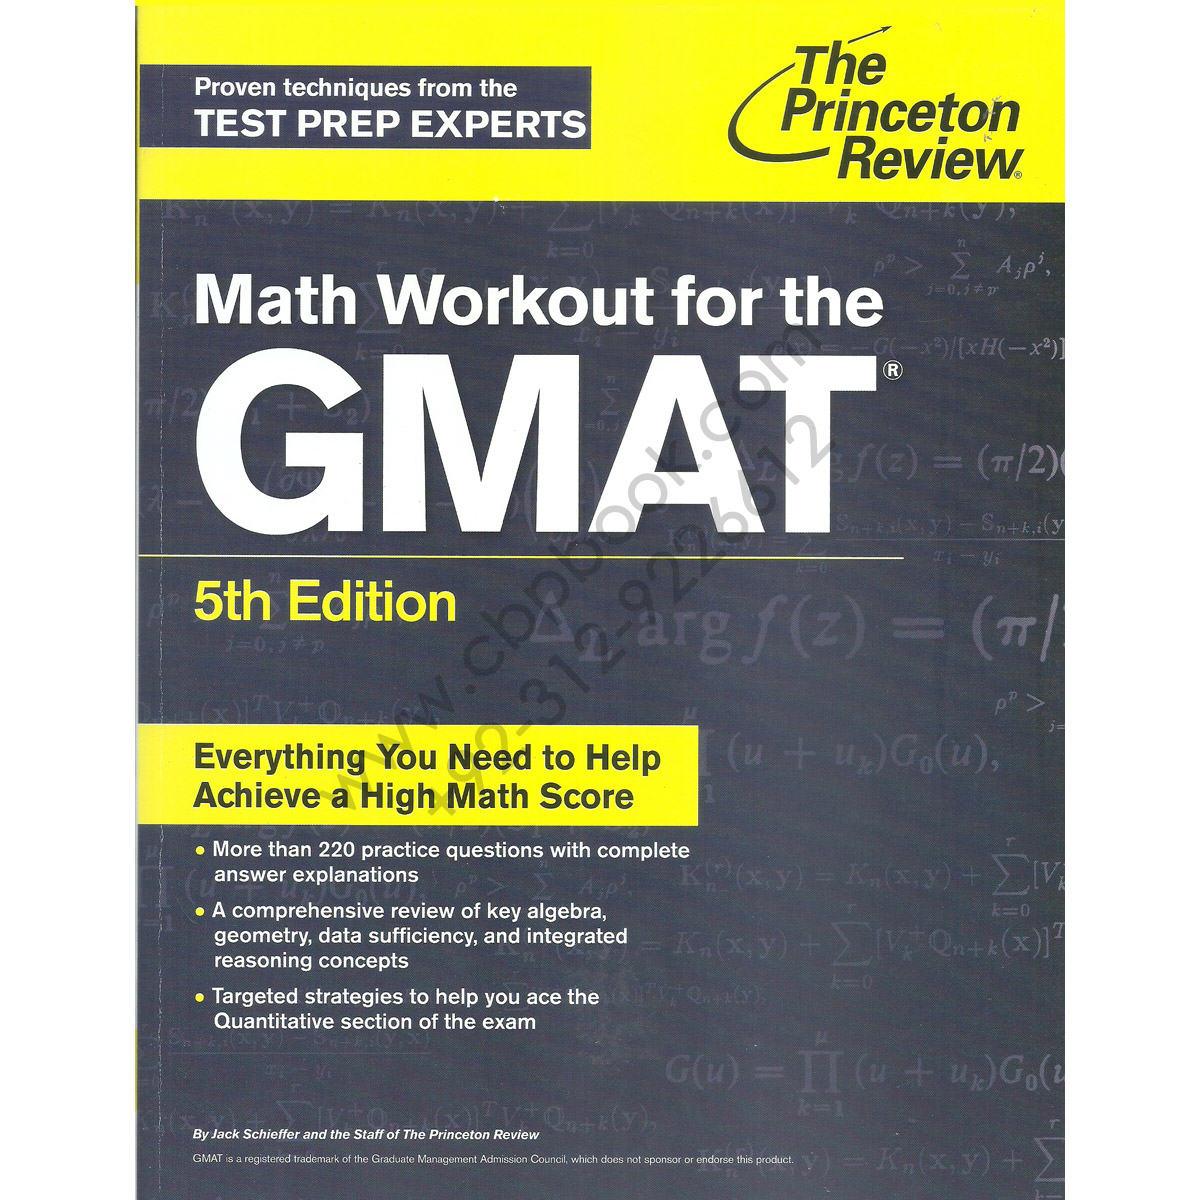 Books - Your GMAT Prep and MBA Admissions Community